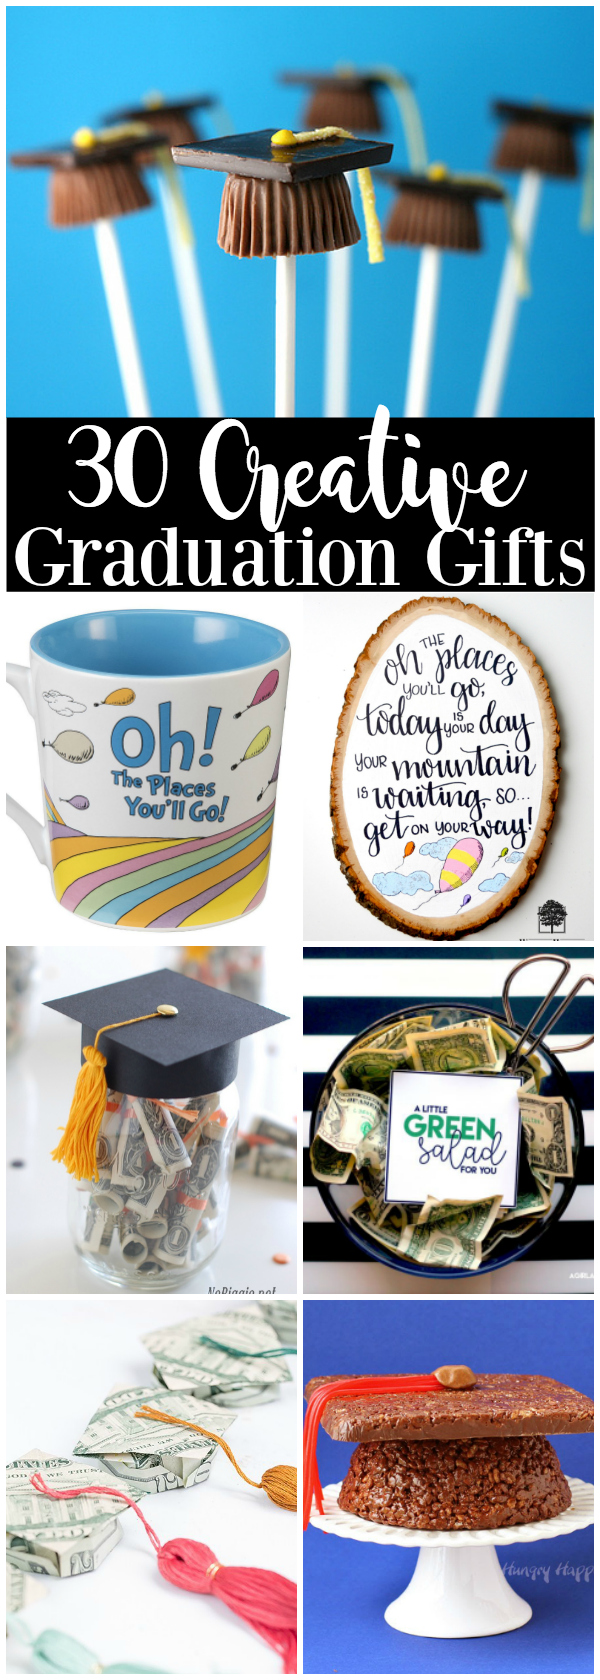 30 Creative Graduation Gift Ideas - graduation ideas for all ages